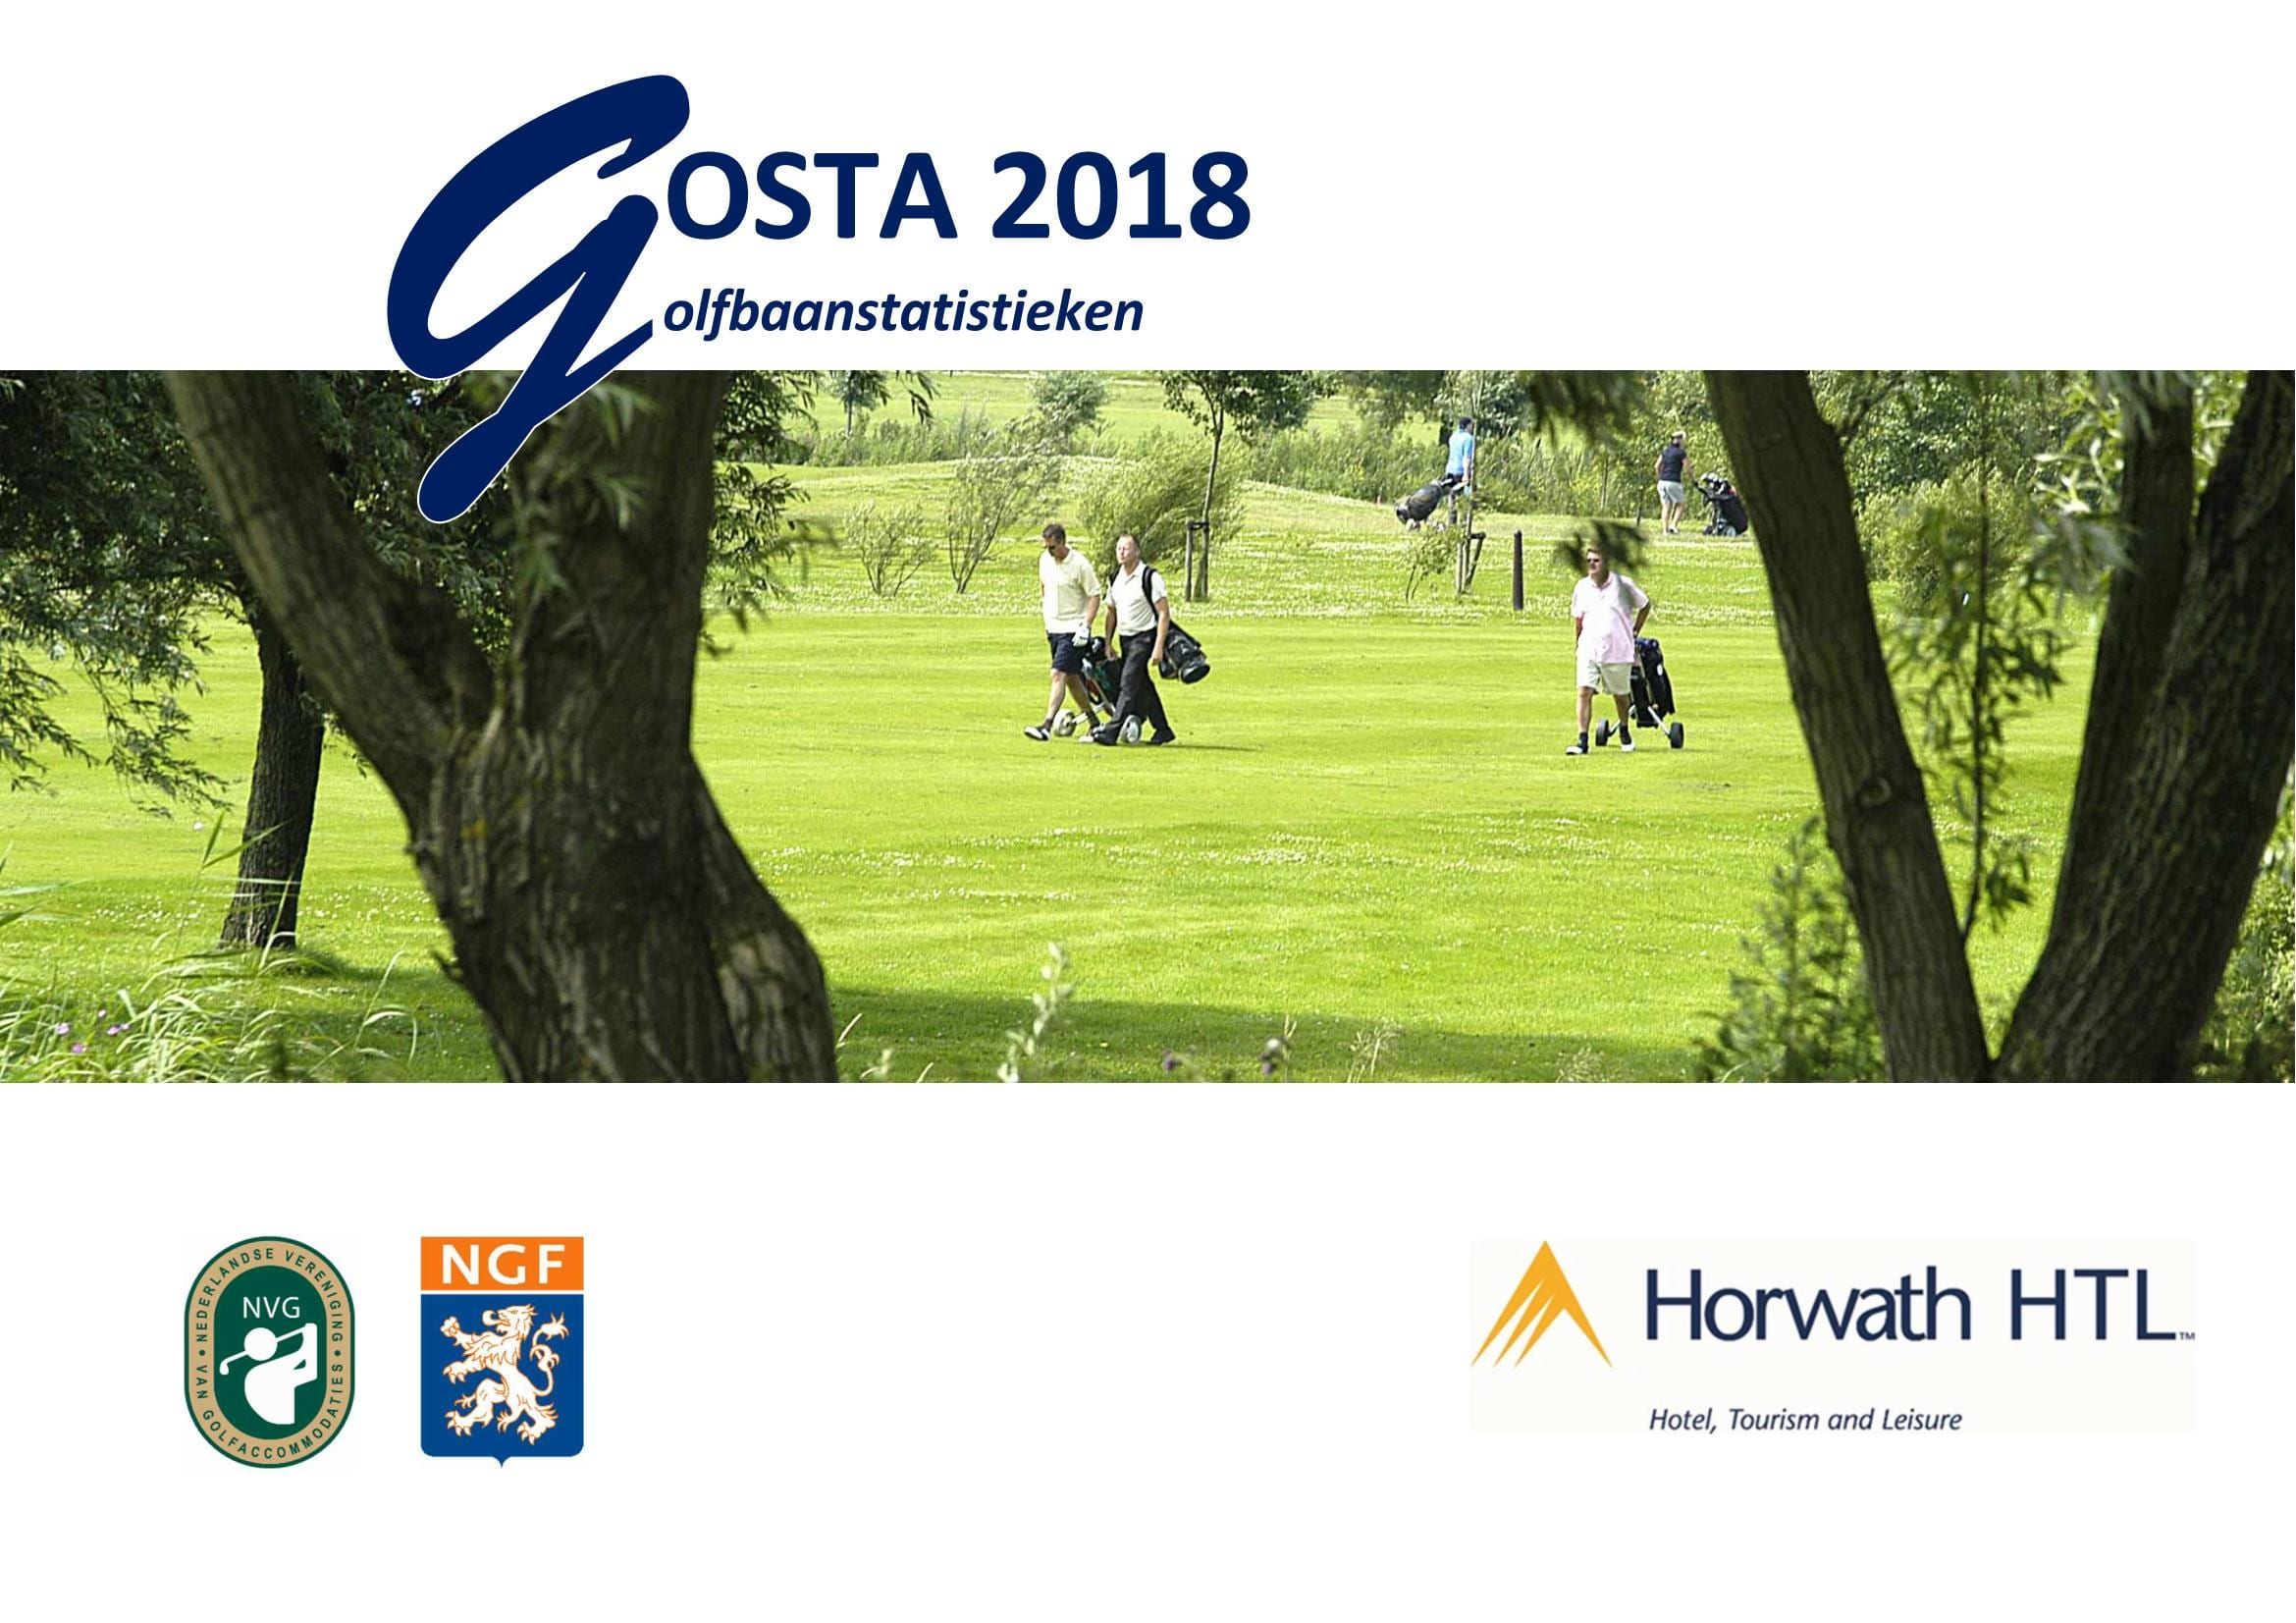 Report: GOSTA 2018 – Golf Course Statistics